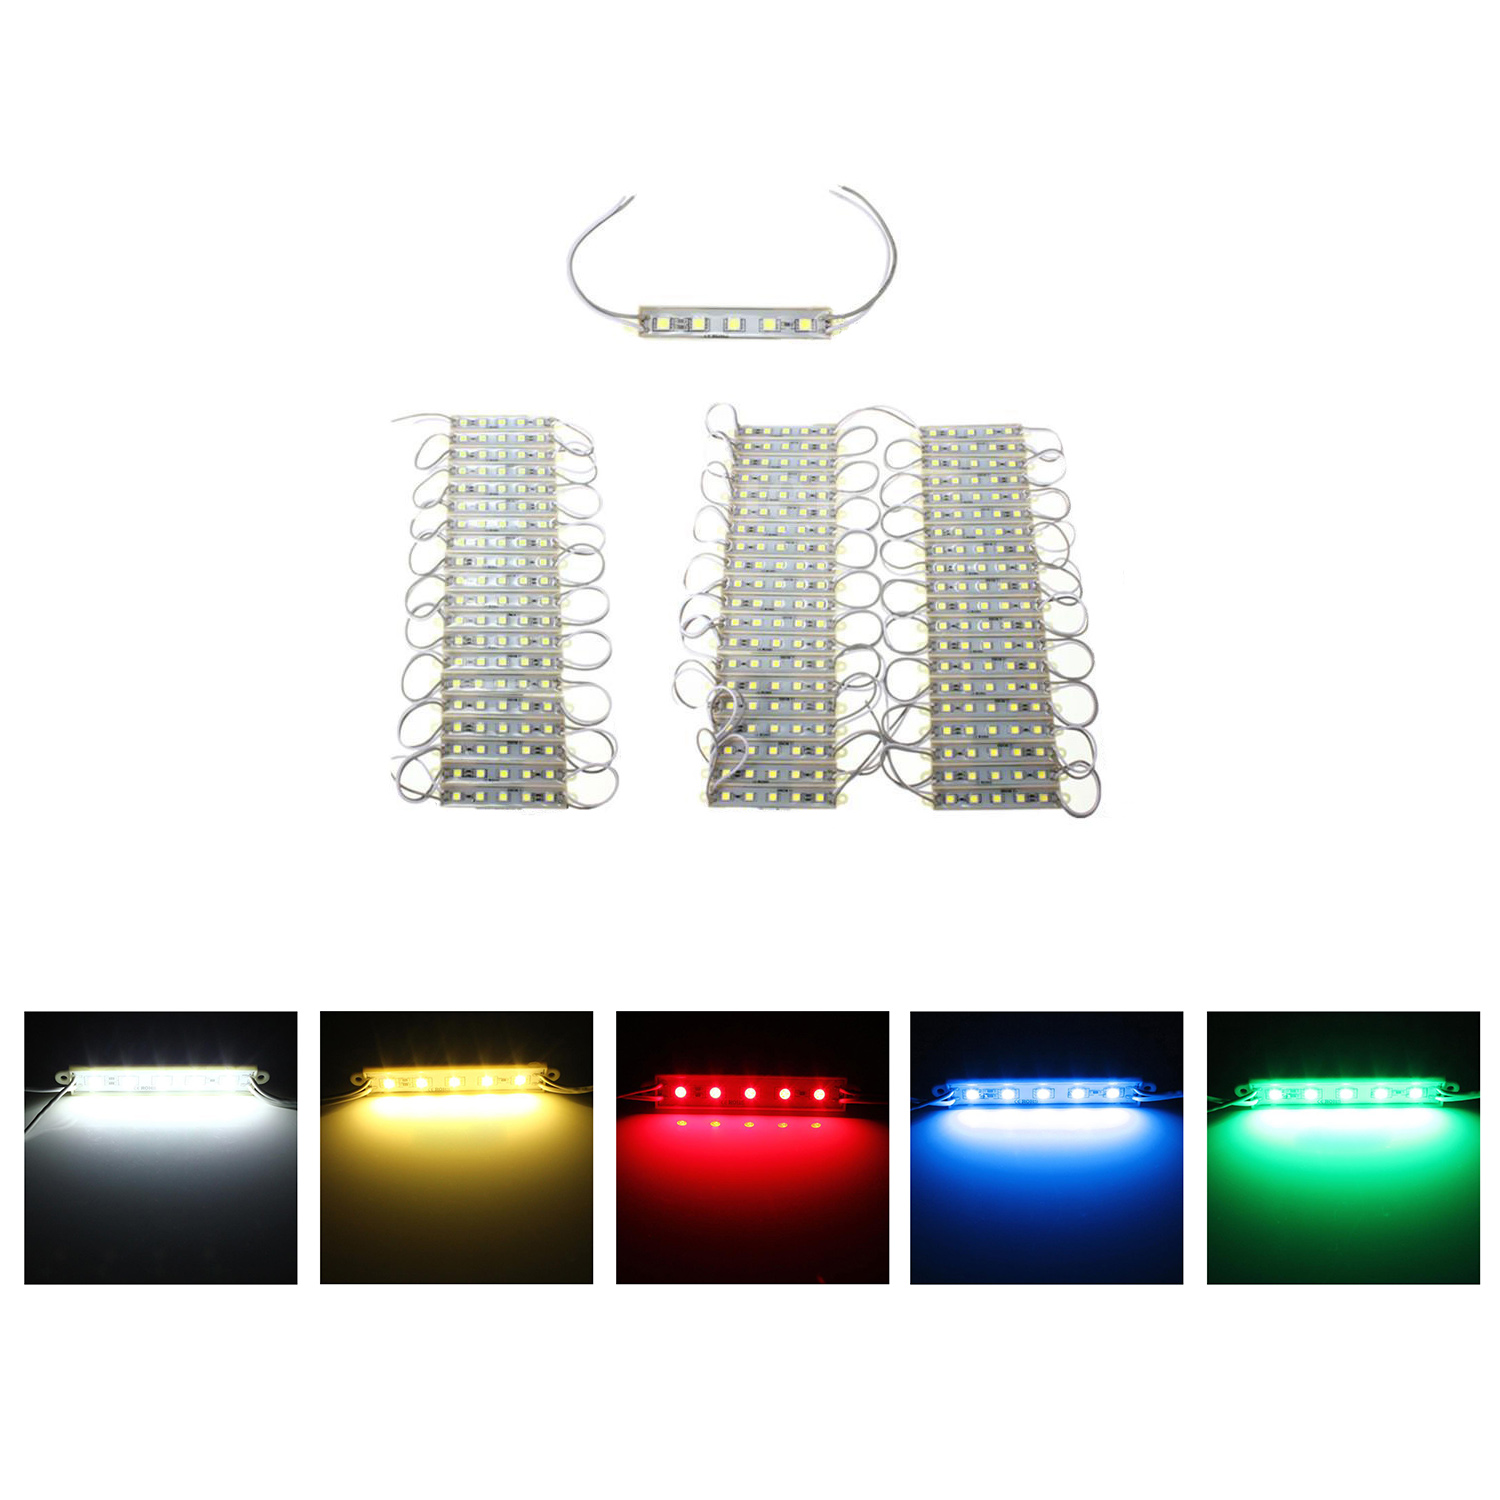 5050 led module 5 smd strip streifen wasserdicht leiste band lampe dc 12v a1 ebay. Black Bedroom Furniture Sets. Home Design Ideas